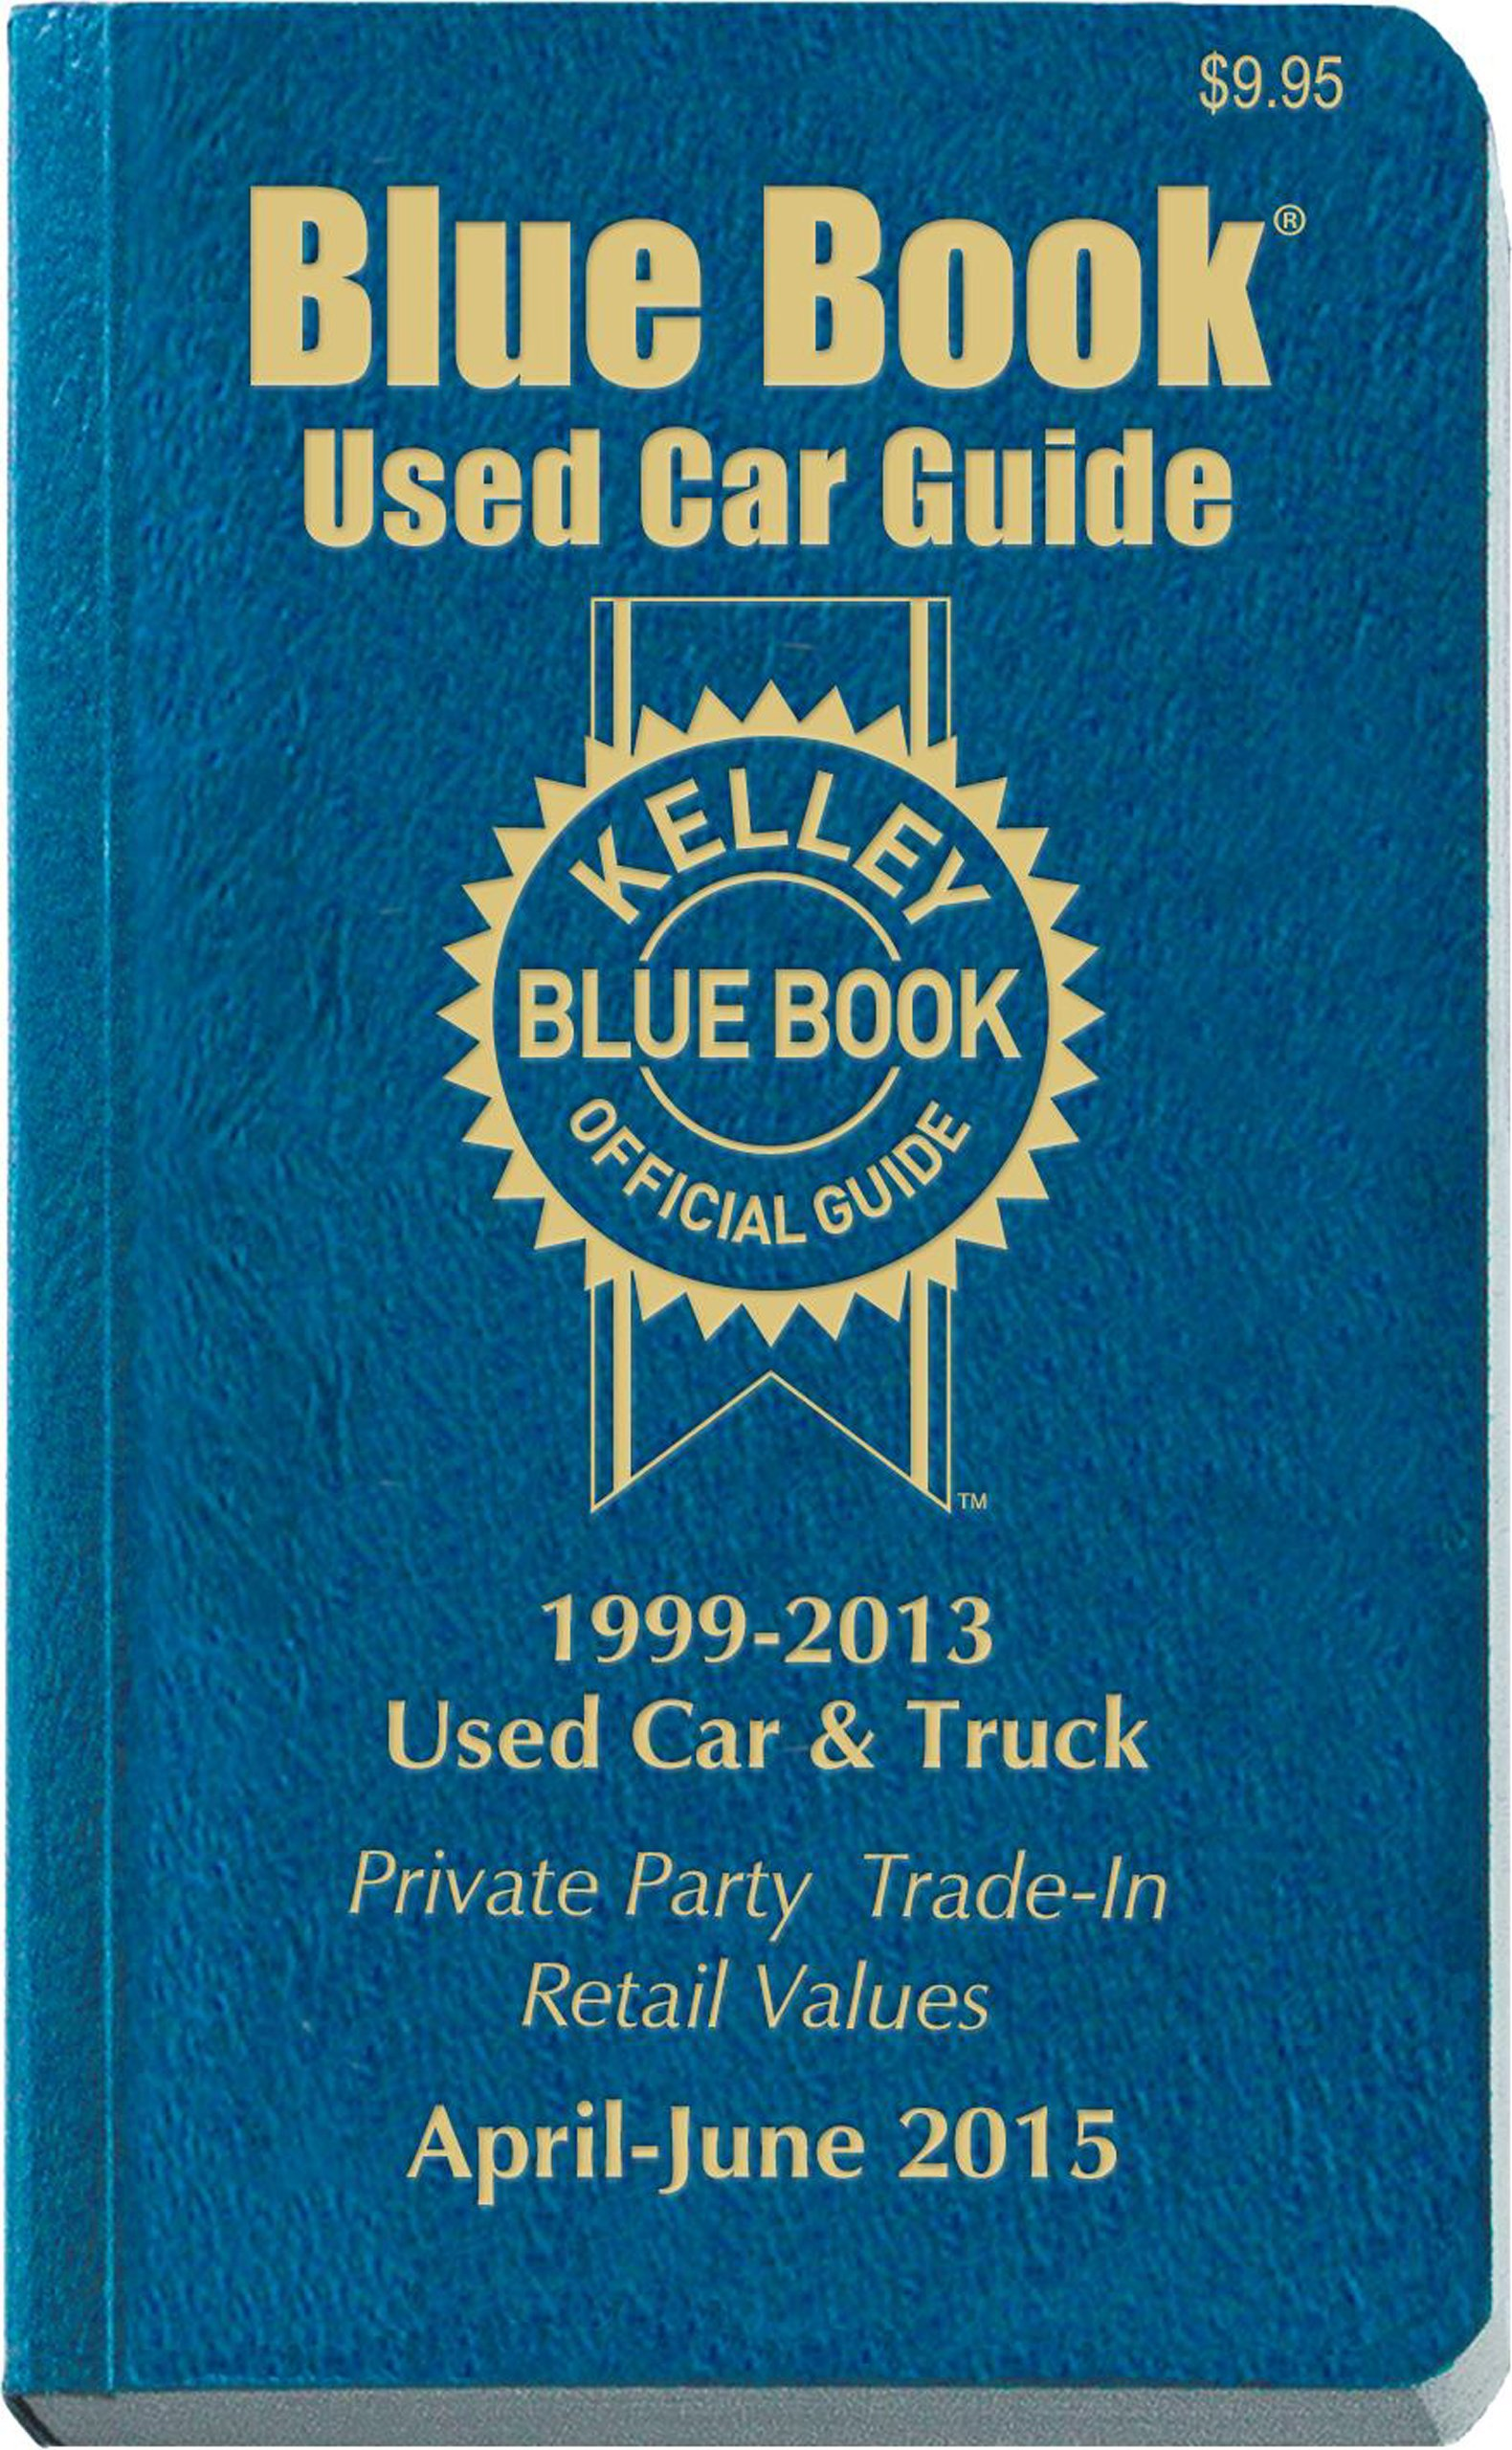 kelley blue book used car guide april june 2015 kelley blue book used car guide consumer edition kelley blue book books